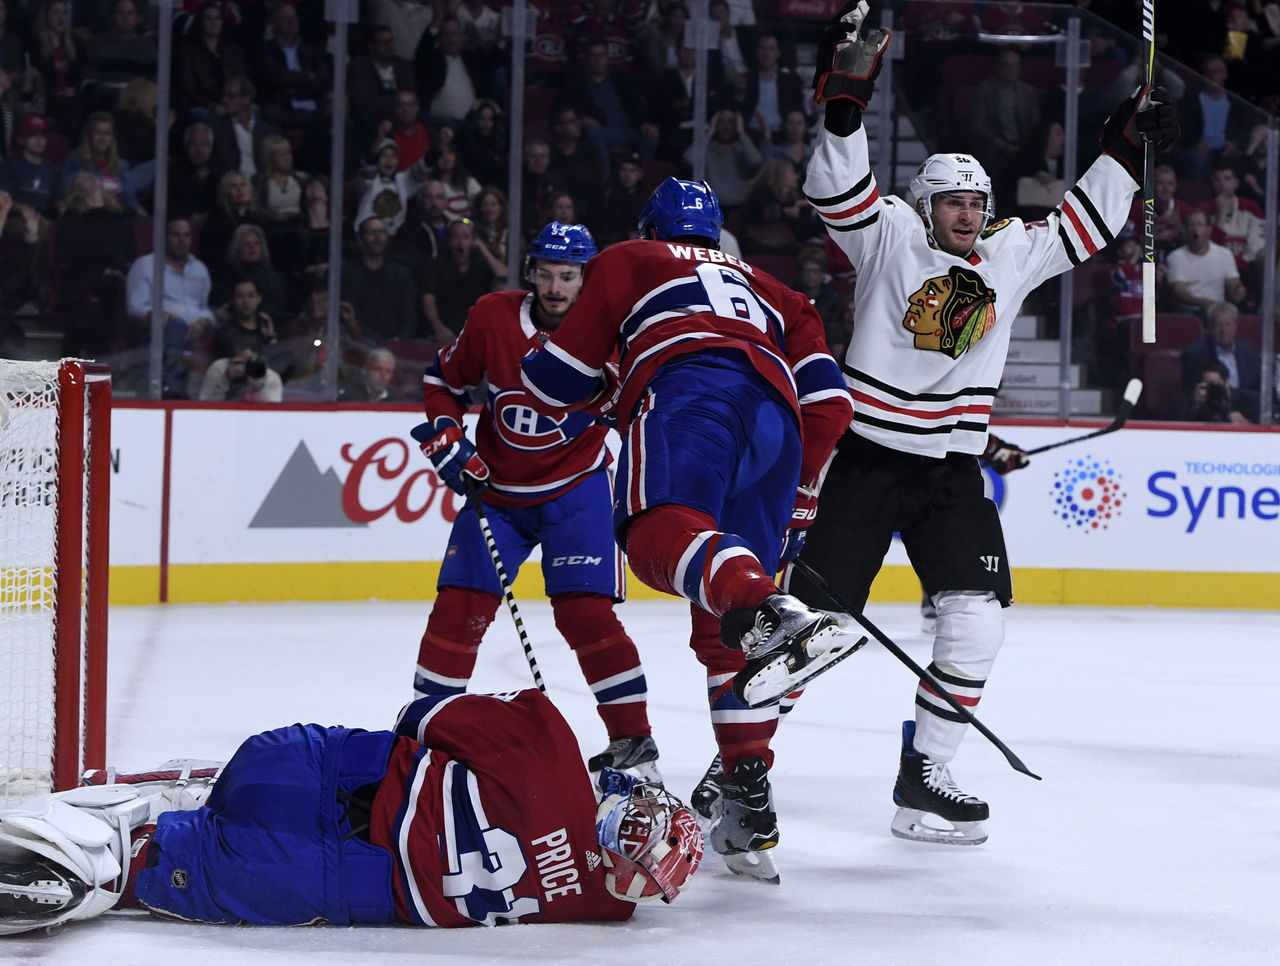 Cropped 2017 10 11t004656z 1171591366 nocid rtrmadp 3 nhl chicago blackhawks at montreal canadiens